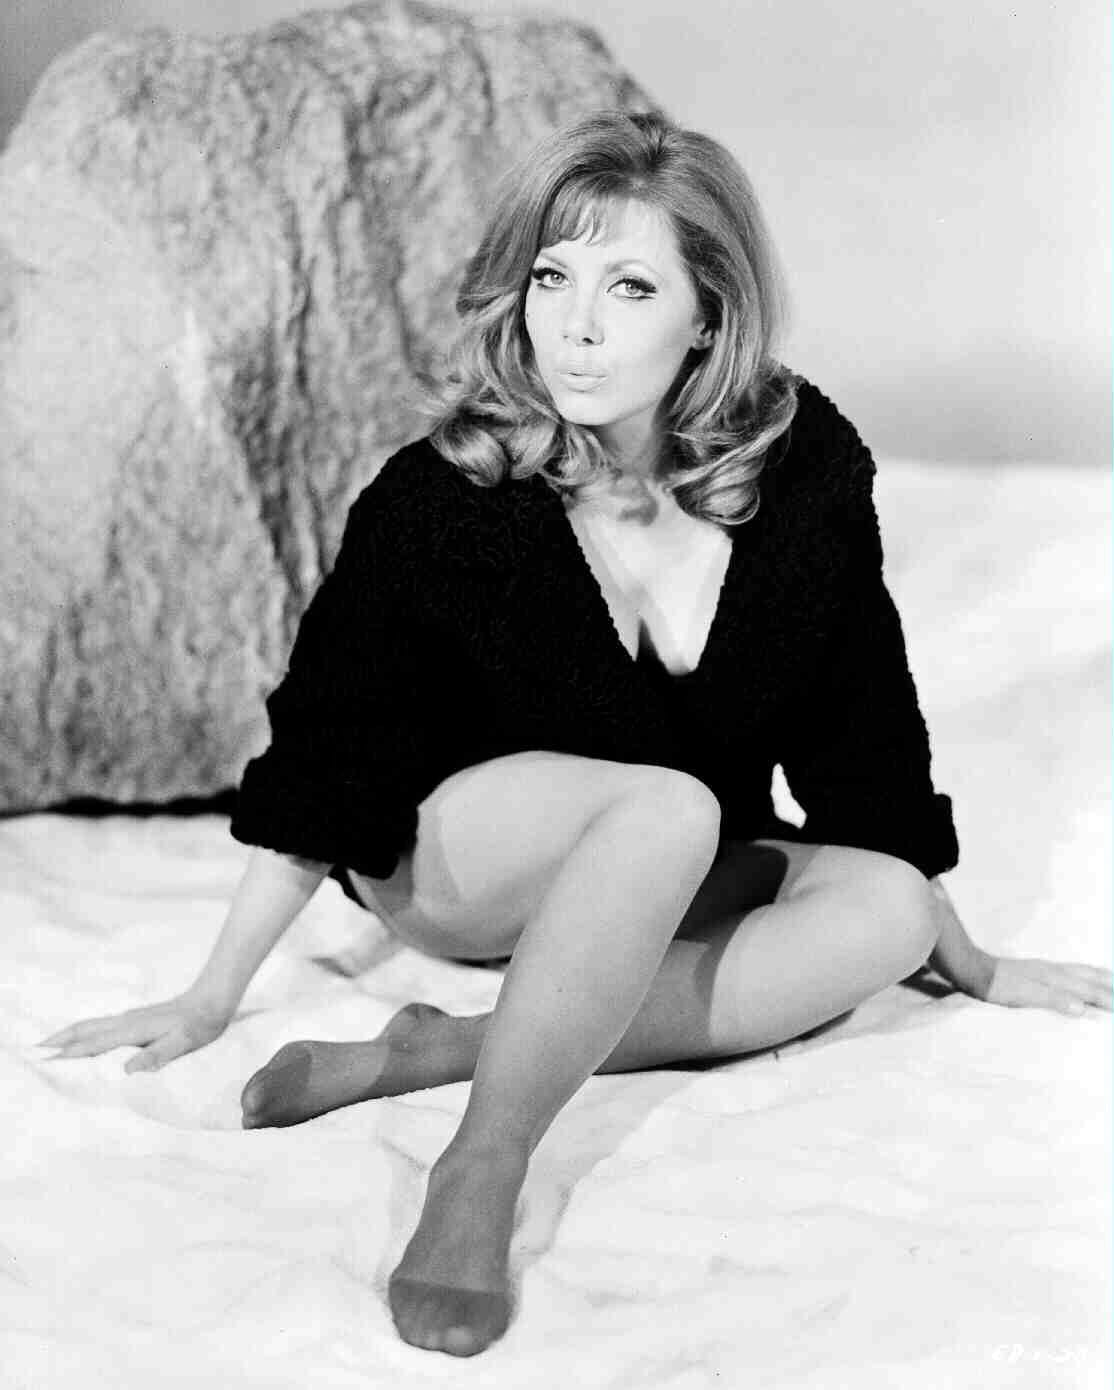 ingrid pitt vampireingrid pitt vampire, ingrid pitt wiki, ingrid pitt, ingrid pitt actress, ingrid pitt tumblr, ingrid pitt cradle of filth, ingrid pitt photos, ingrid pitt cause of death, ingrid pitt imdb, ingrid pitt death, ingrid pitt doctor who, ingrid pitt pictures, ingrid pitt feet, ingrid pitt beyond the forest